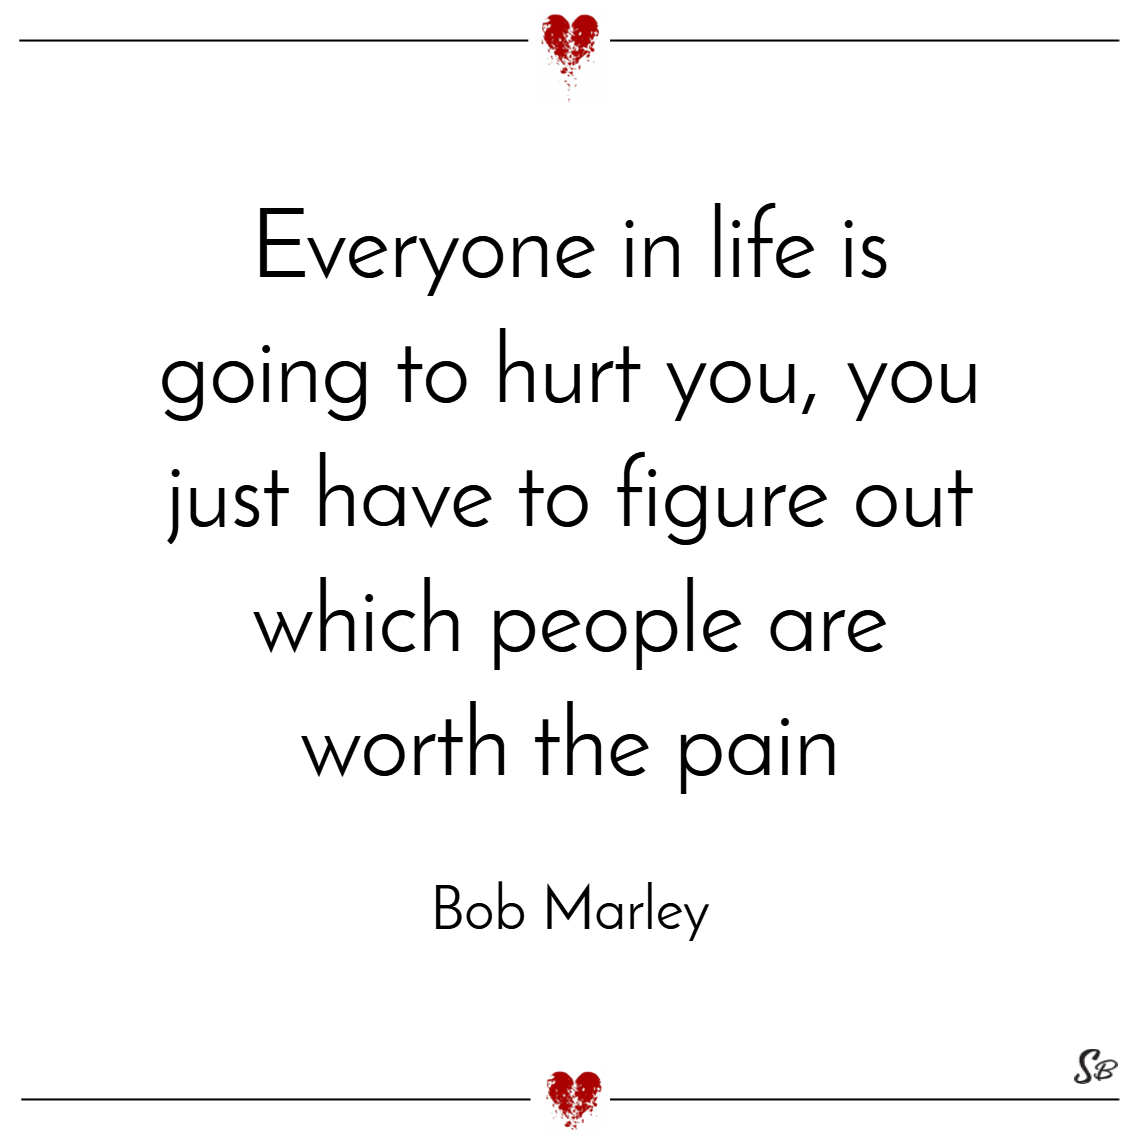 Everyone in life is going to hurt you, you just have to figure out which people are worth the pain. – bob marley